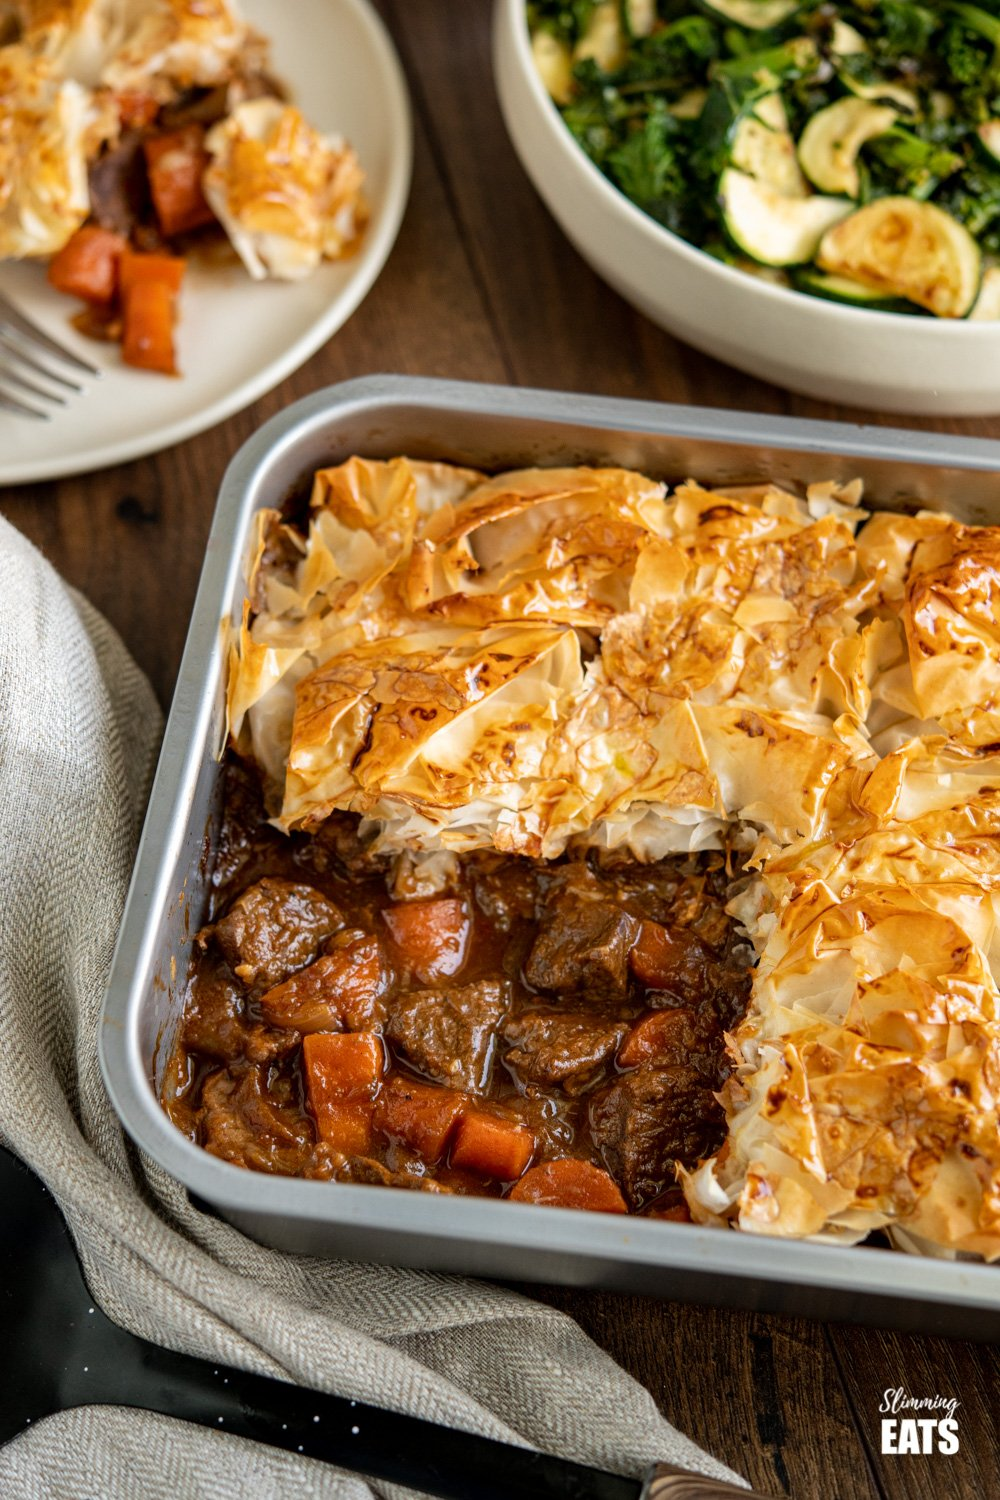 Steak and Vegetable Pie in baking tin with bowl of green vegetables in background